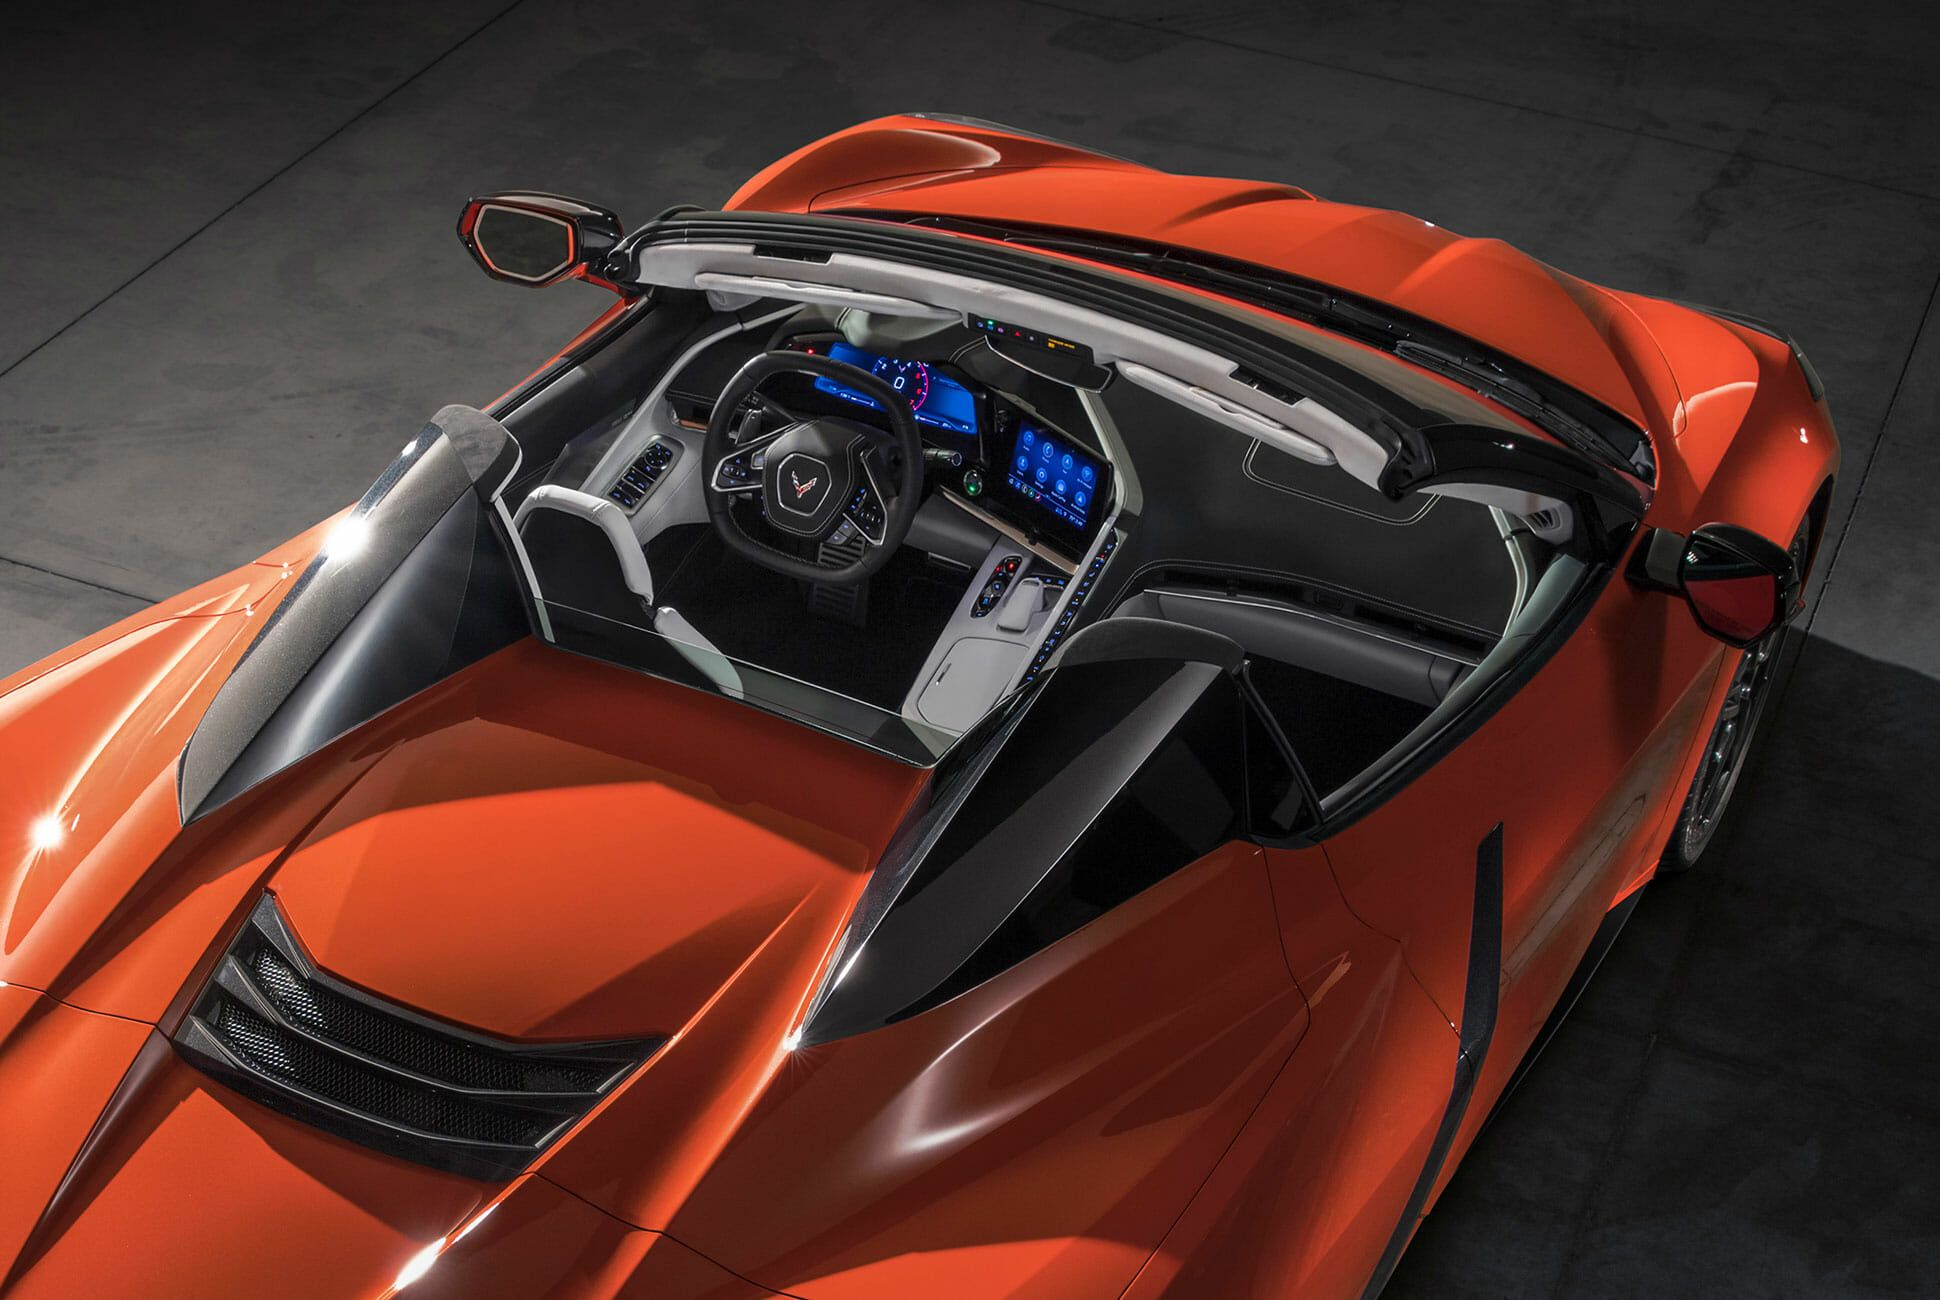 A Gm Designer Explains Why The 2020 Chevy Corvette S Interior